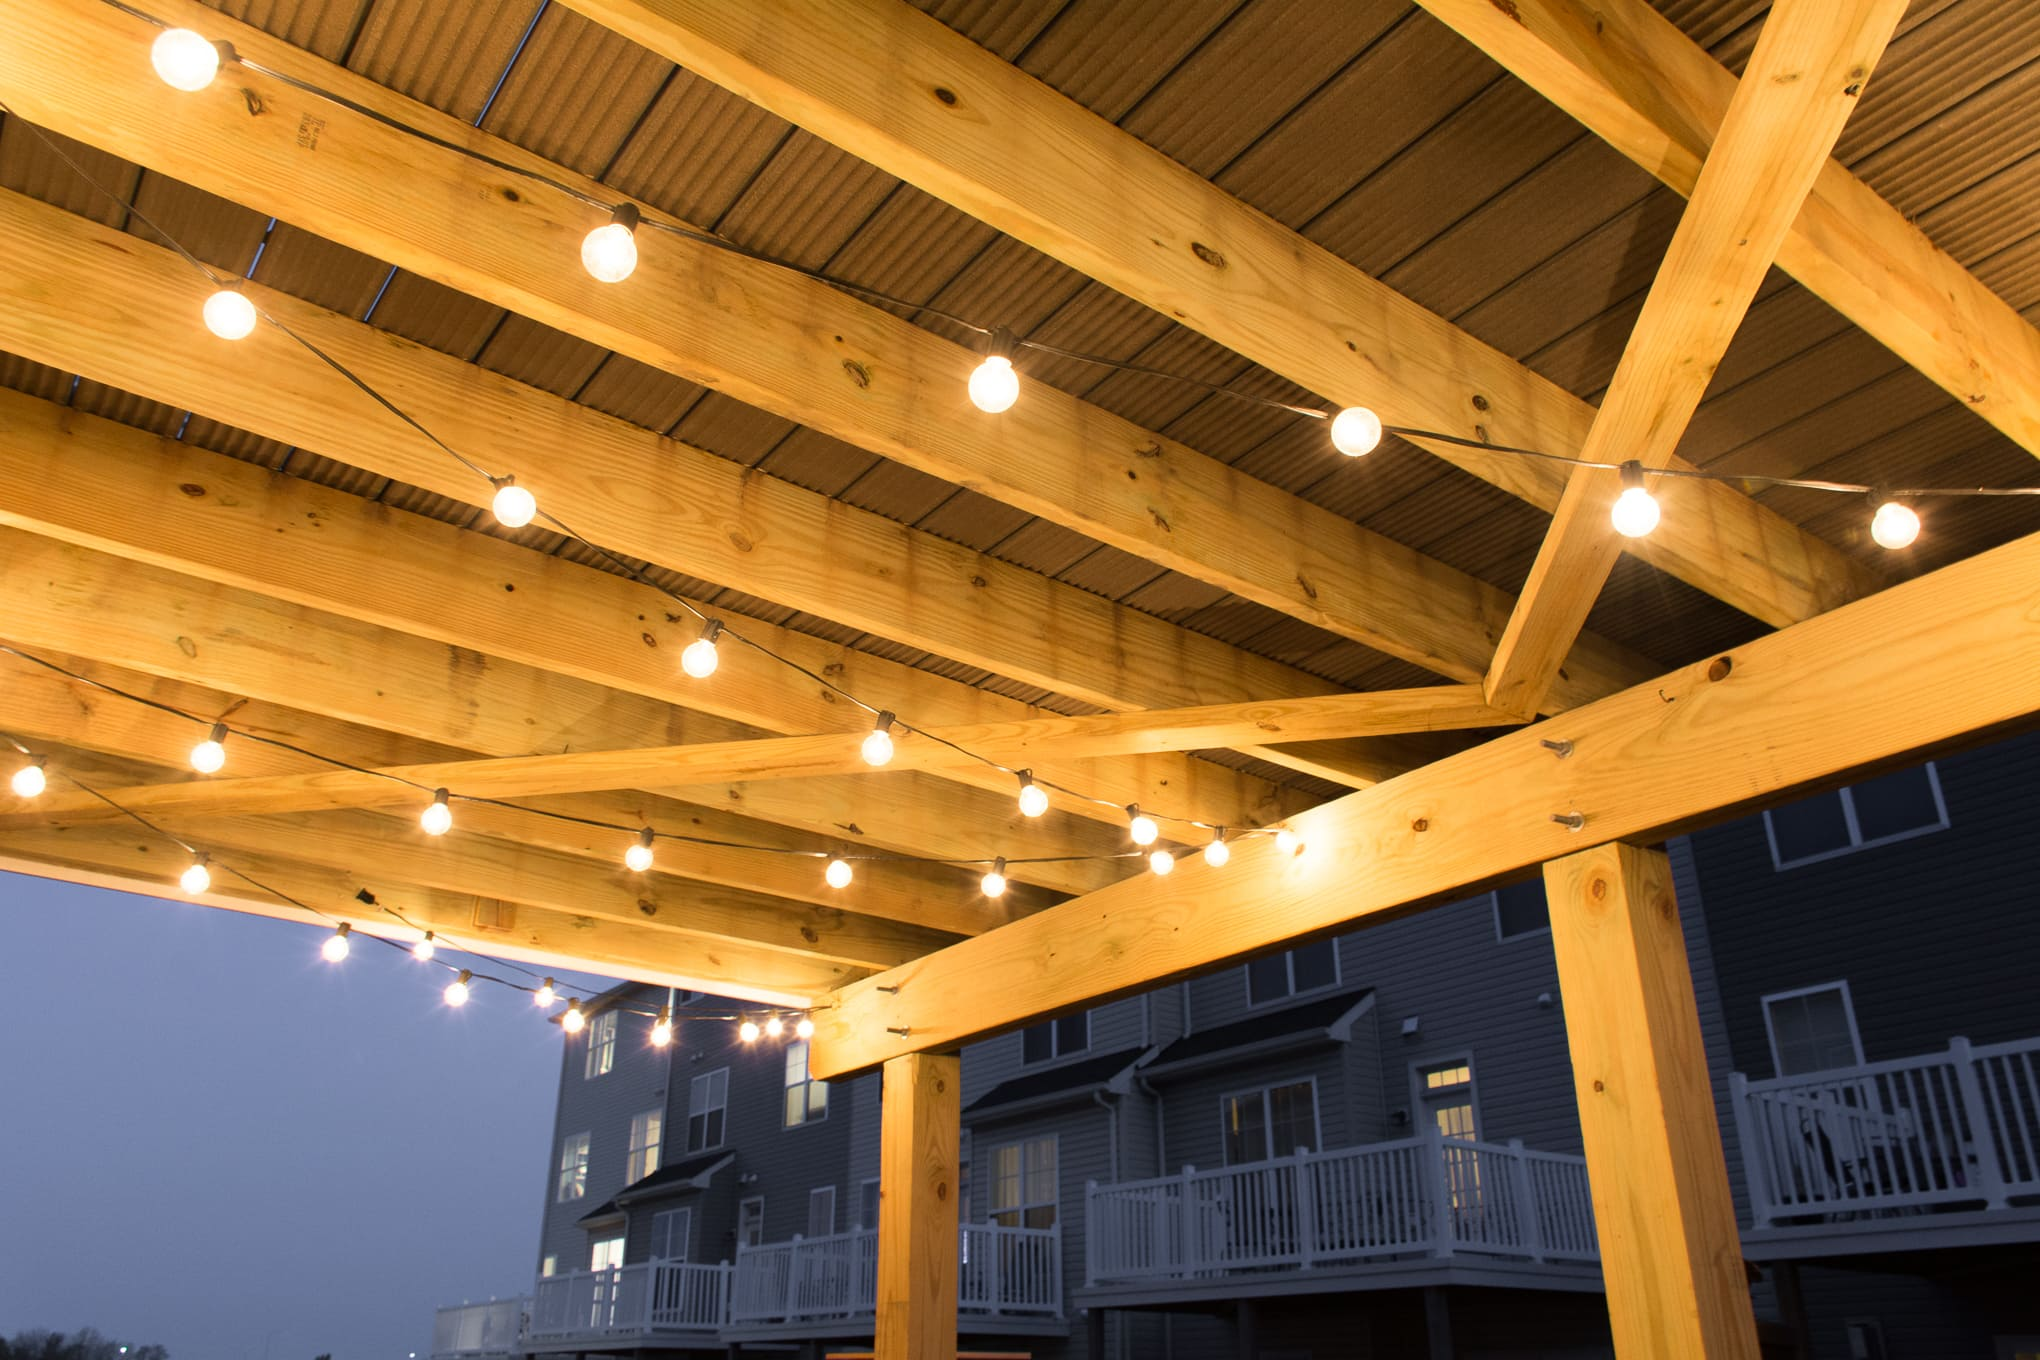 How to hang globe string lights under a deck